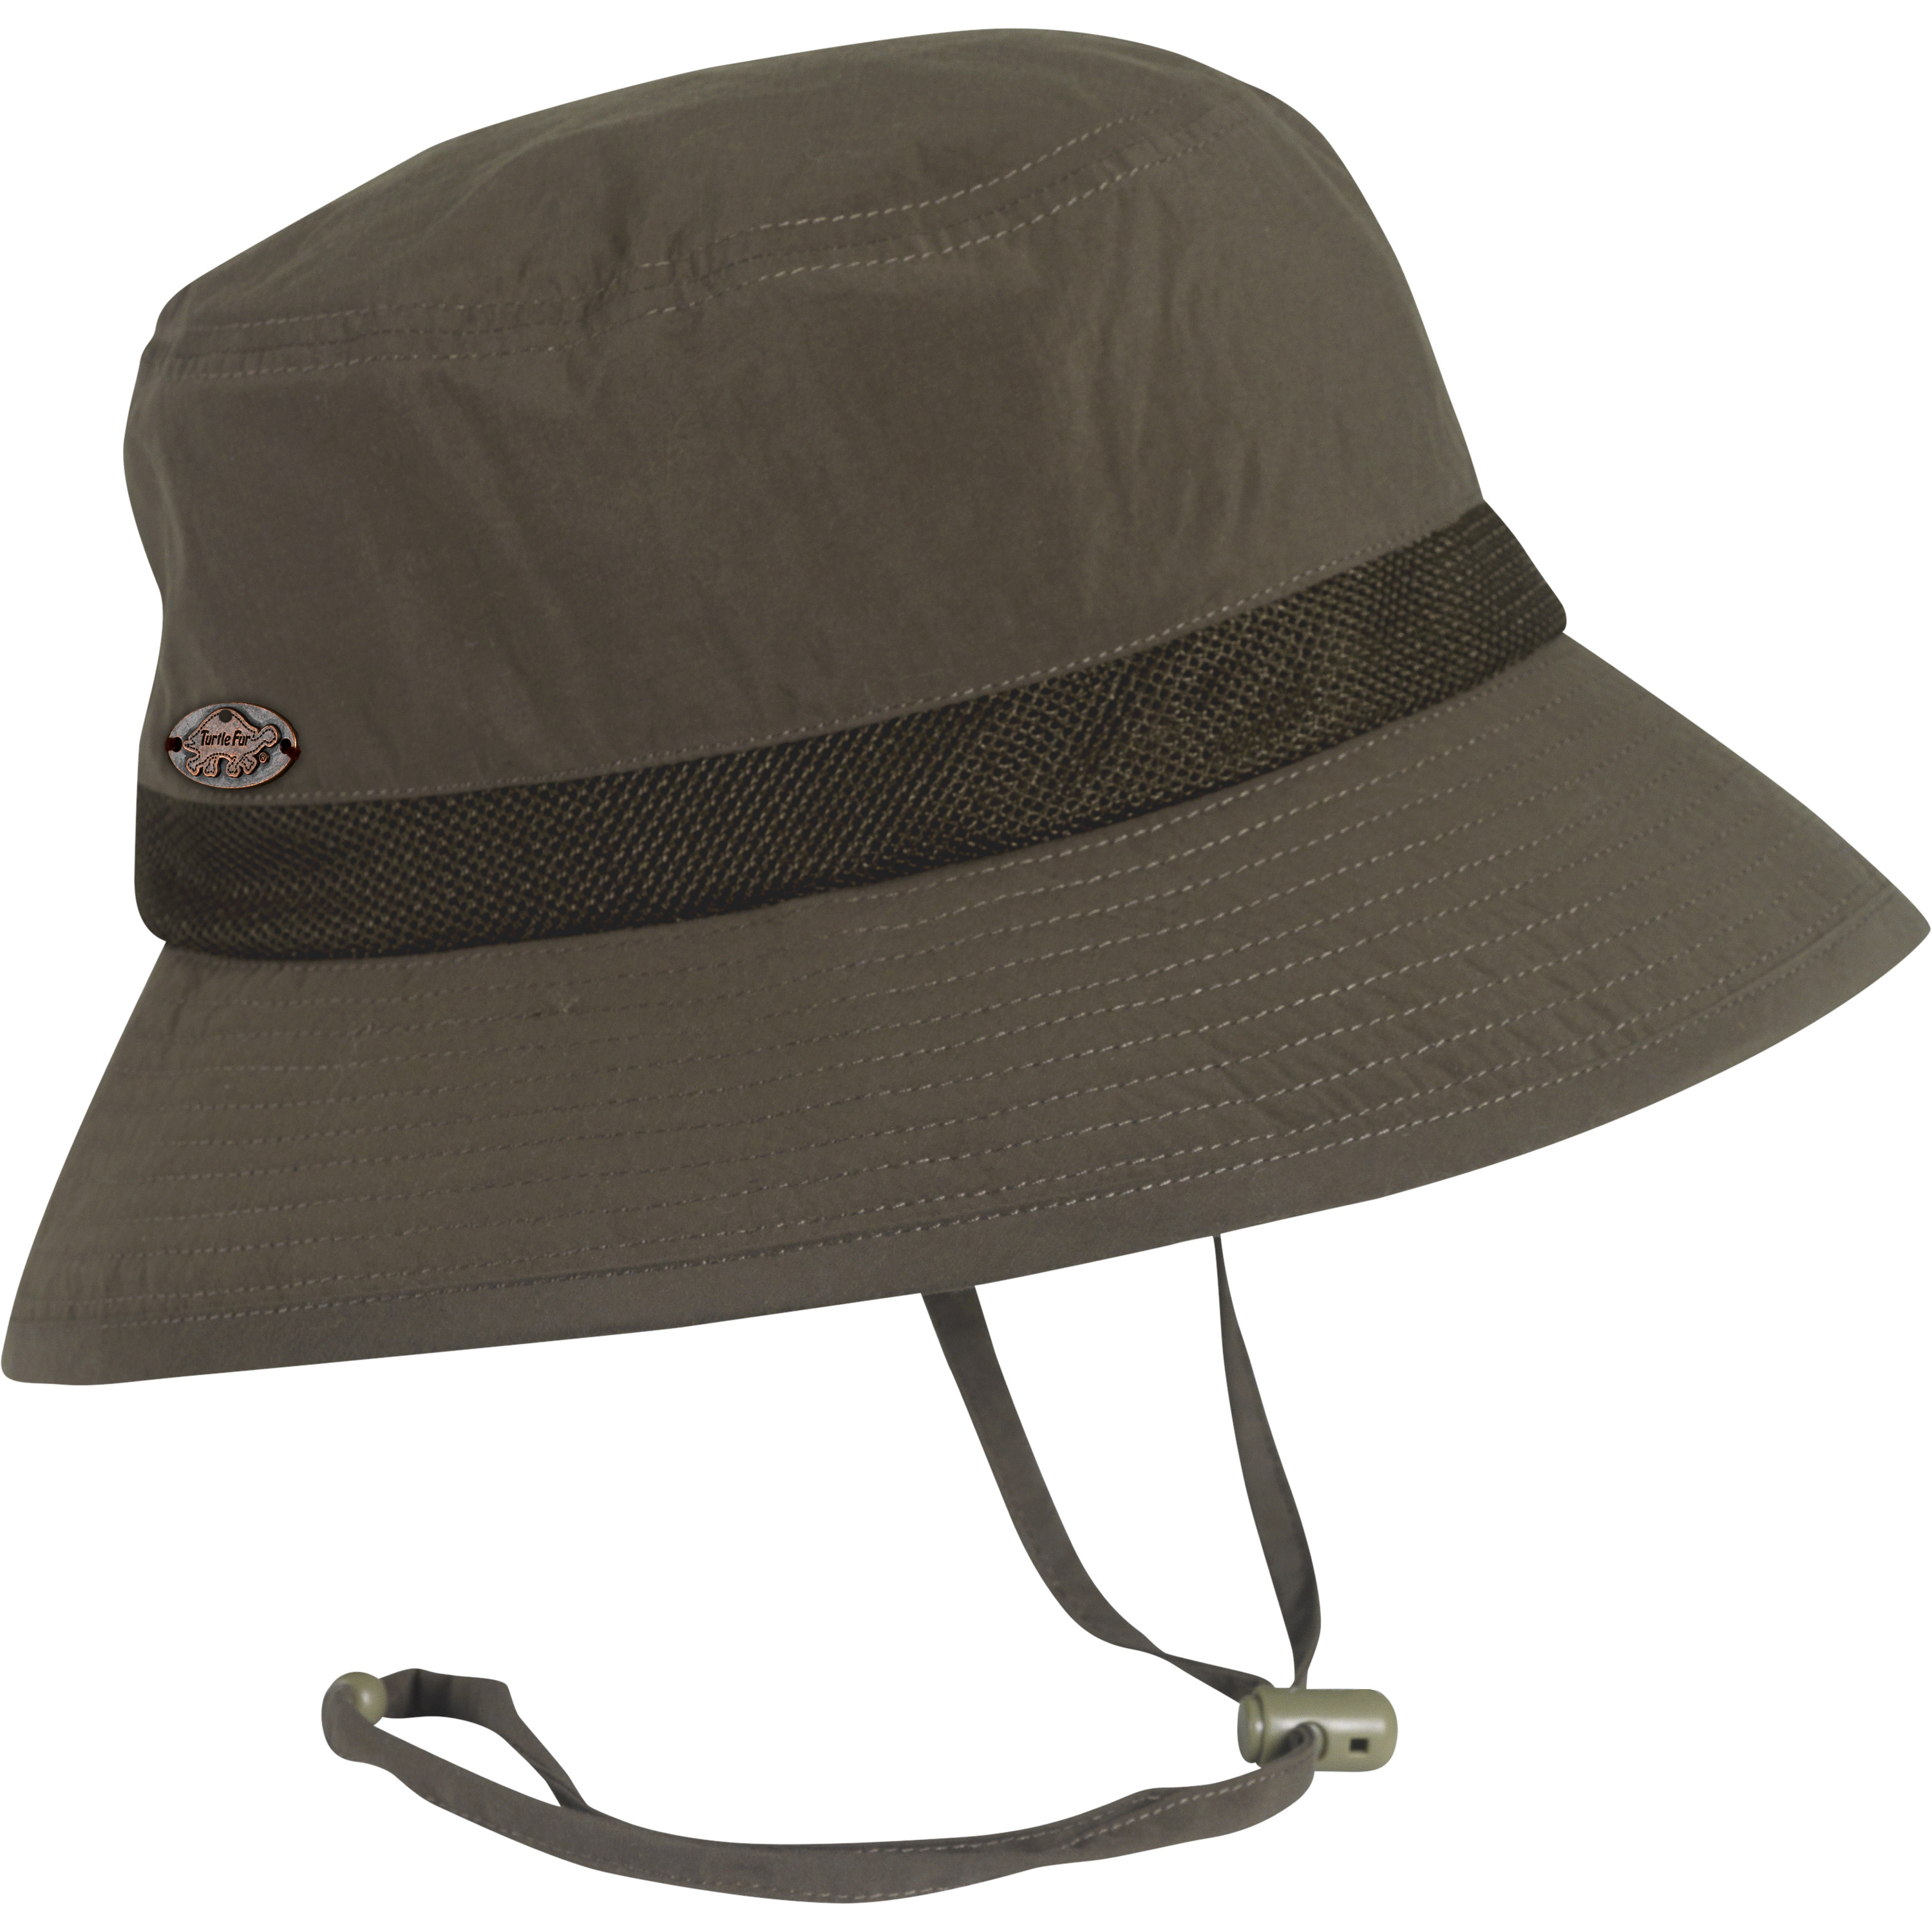 Turtle Fur Breezeway Bucket Hat